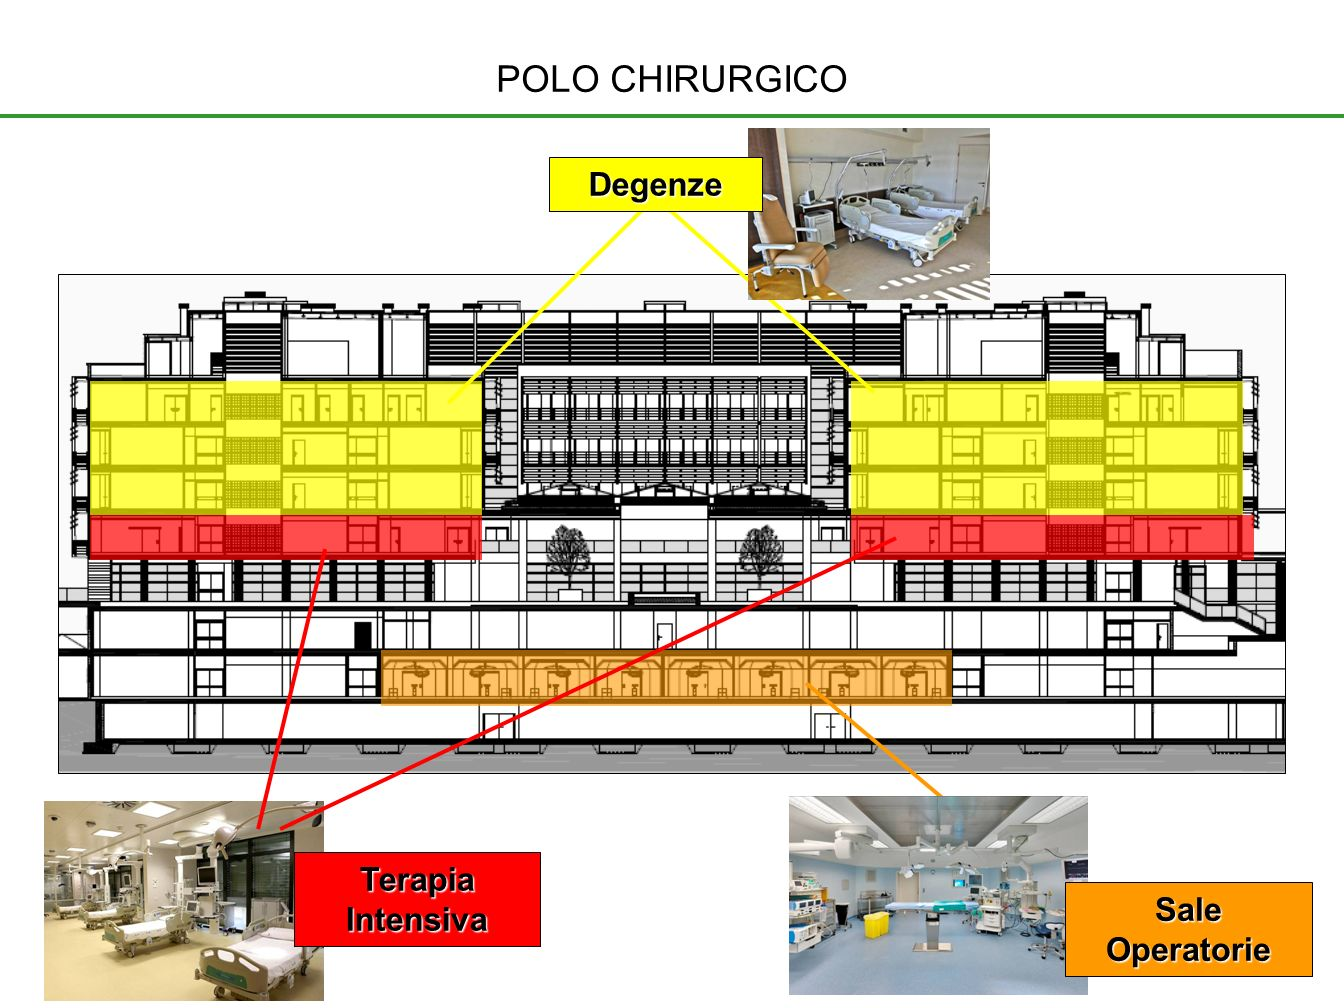 POLO CHIRURGICO Degenze Terapia Intensiva Sale Operatorie